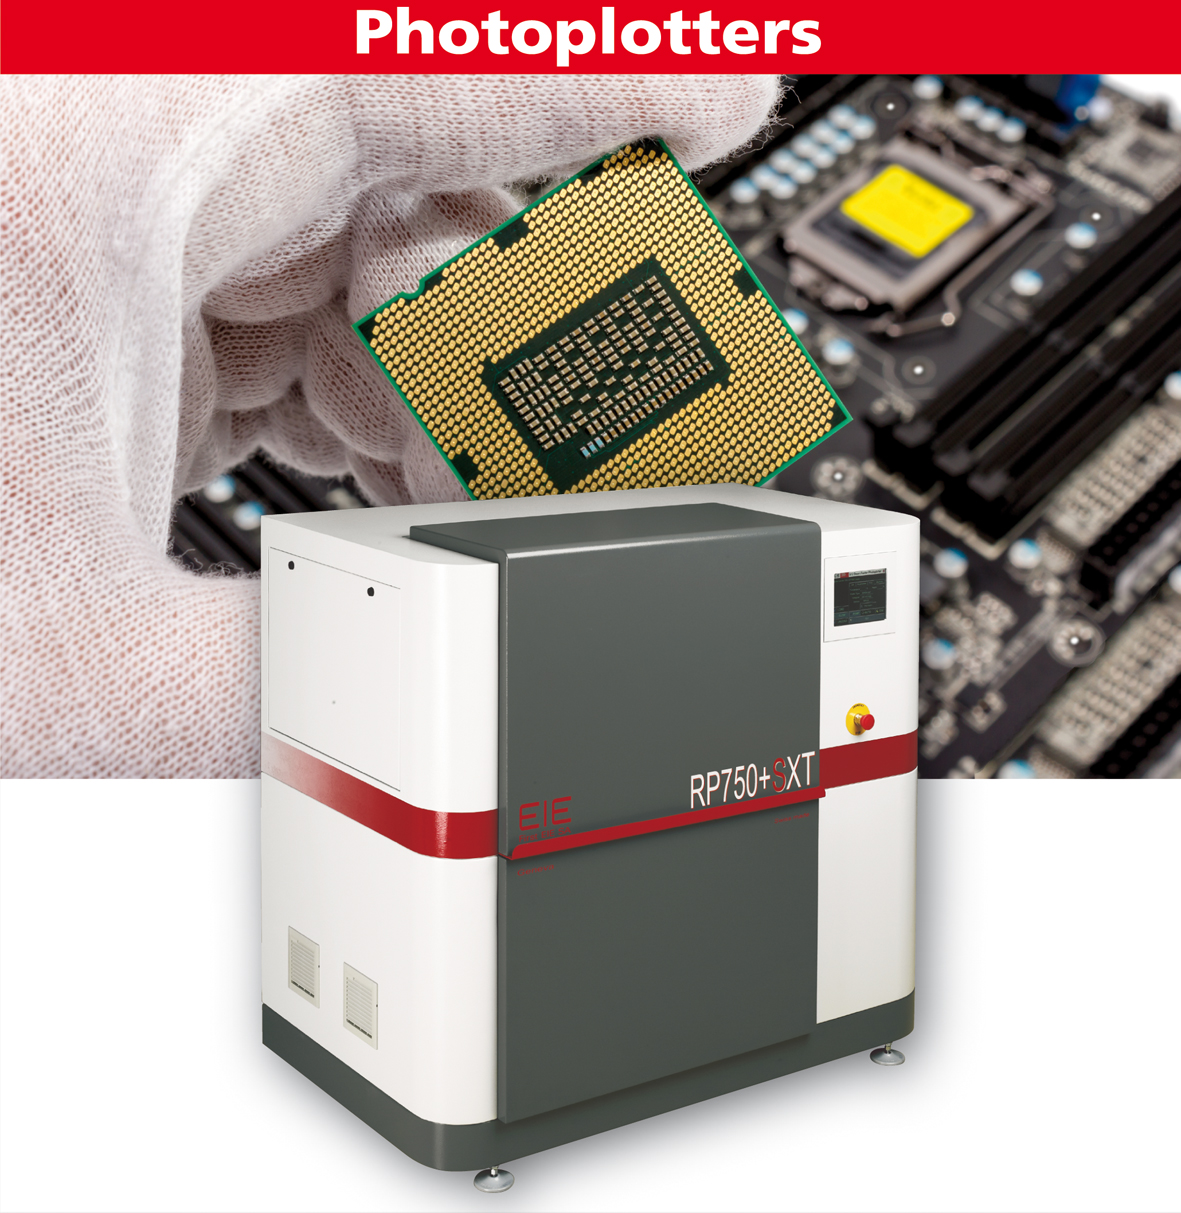 Photoplotters